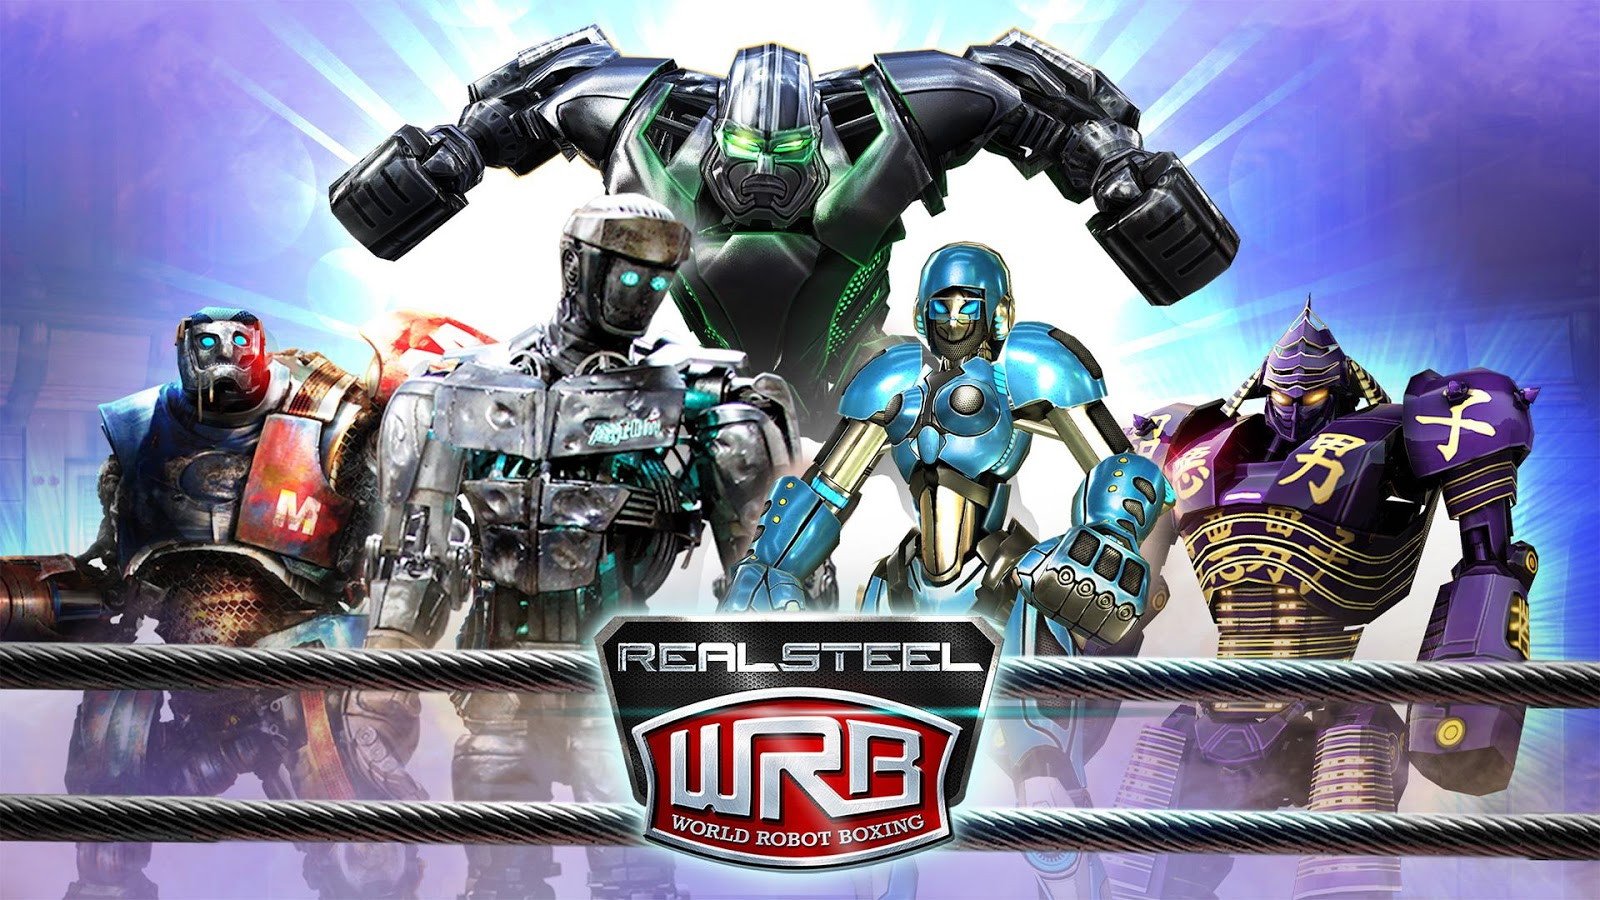 Real Steel World Robot Boxing Screenshot 0